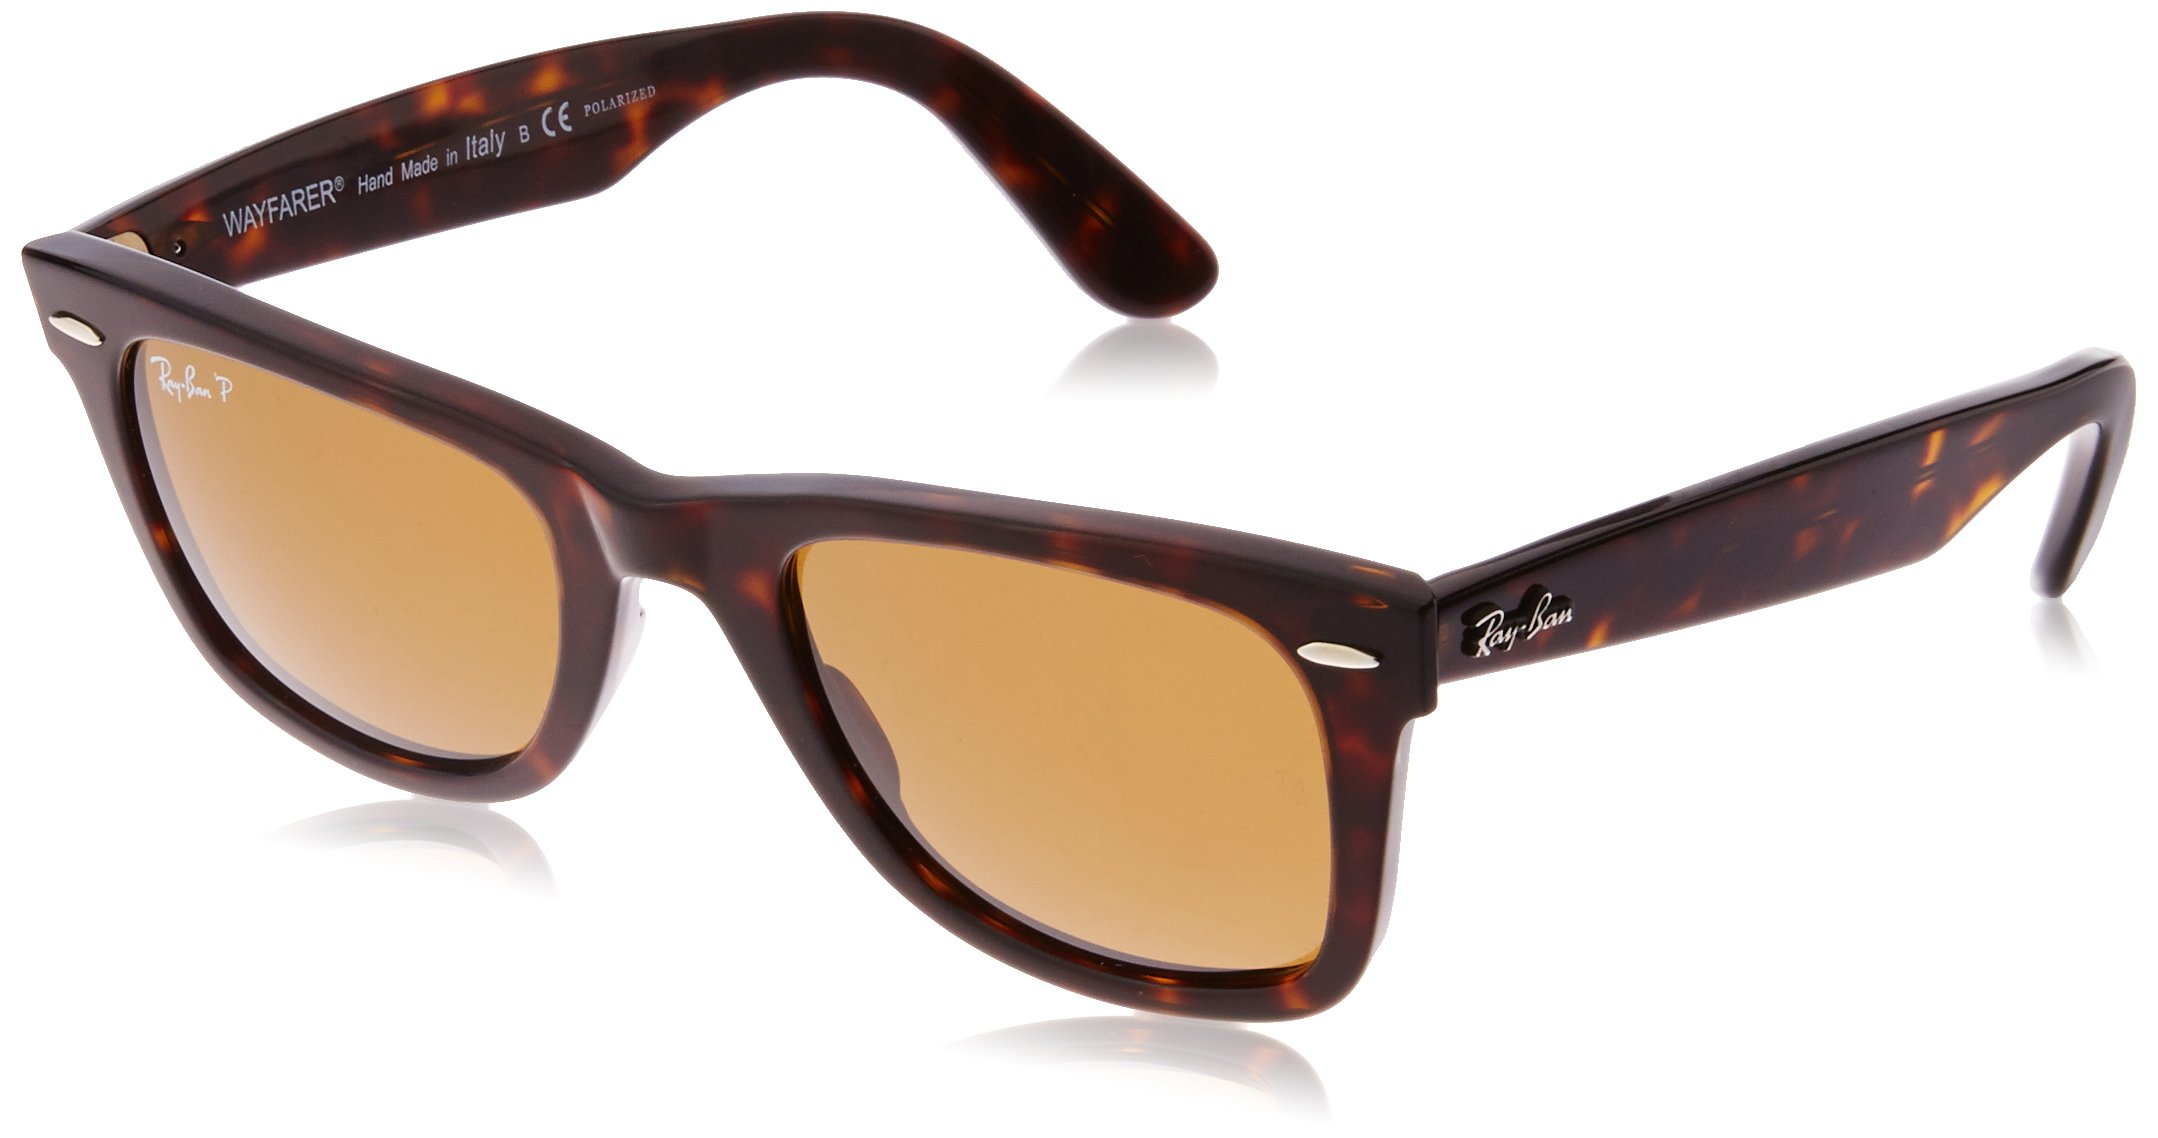 Ray-Ban WAYFARER - TORTOISE Frame CRYSTAL BROWN POLARIZED Lenses 50mm Polarized by Ray-Ban